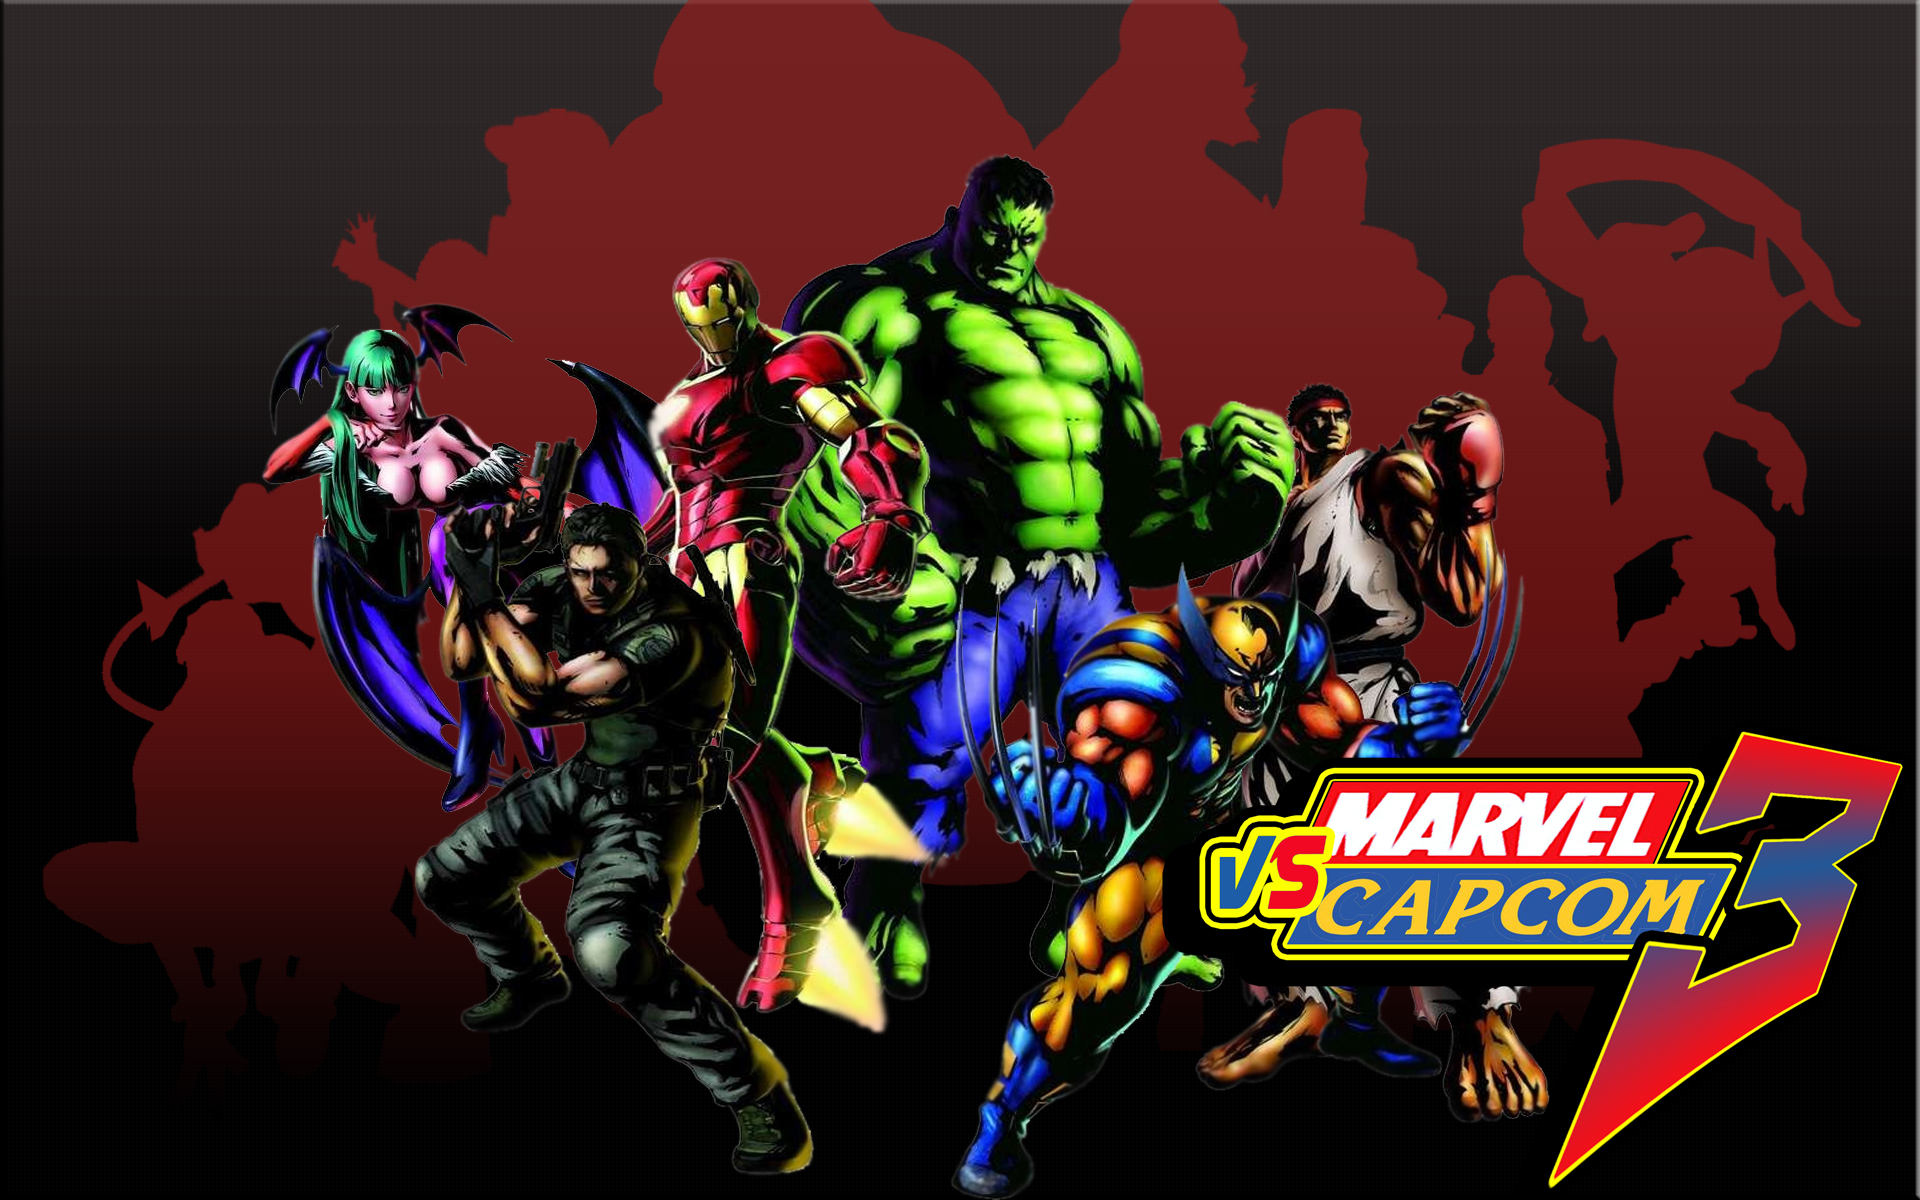 en este post les traigo unos wallpapers en HD de Marvel vs Capcom 3 1920x1200